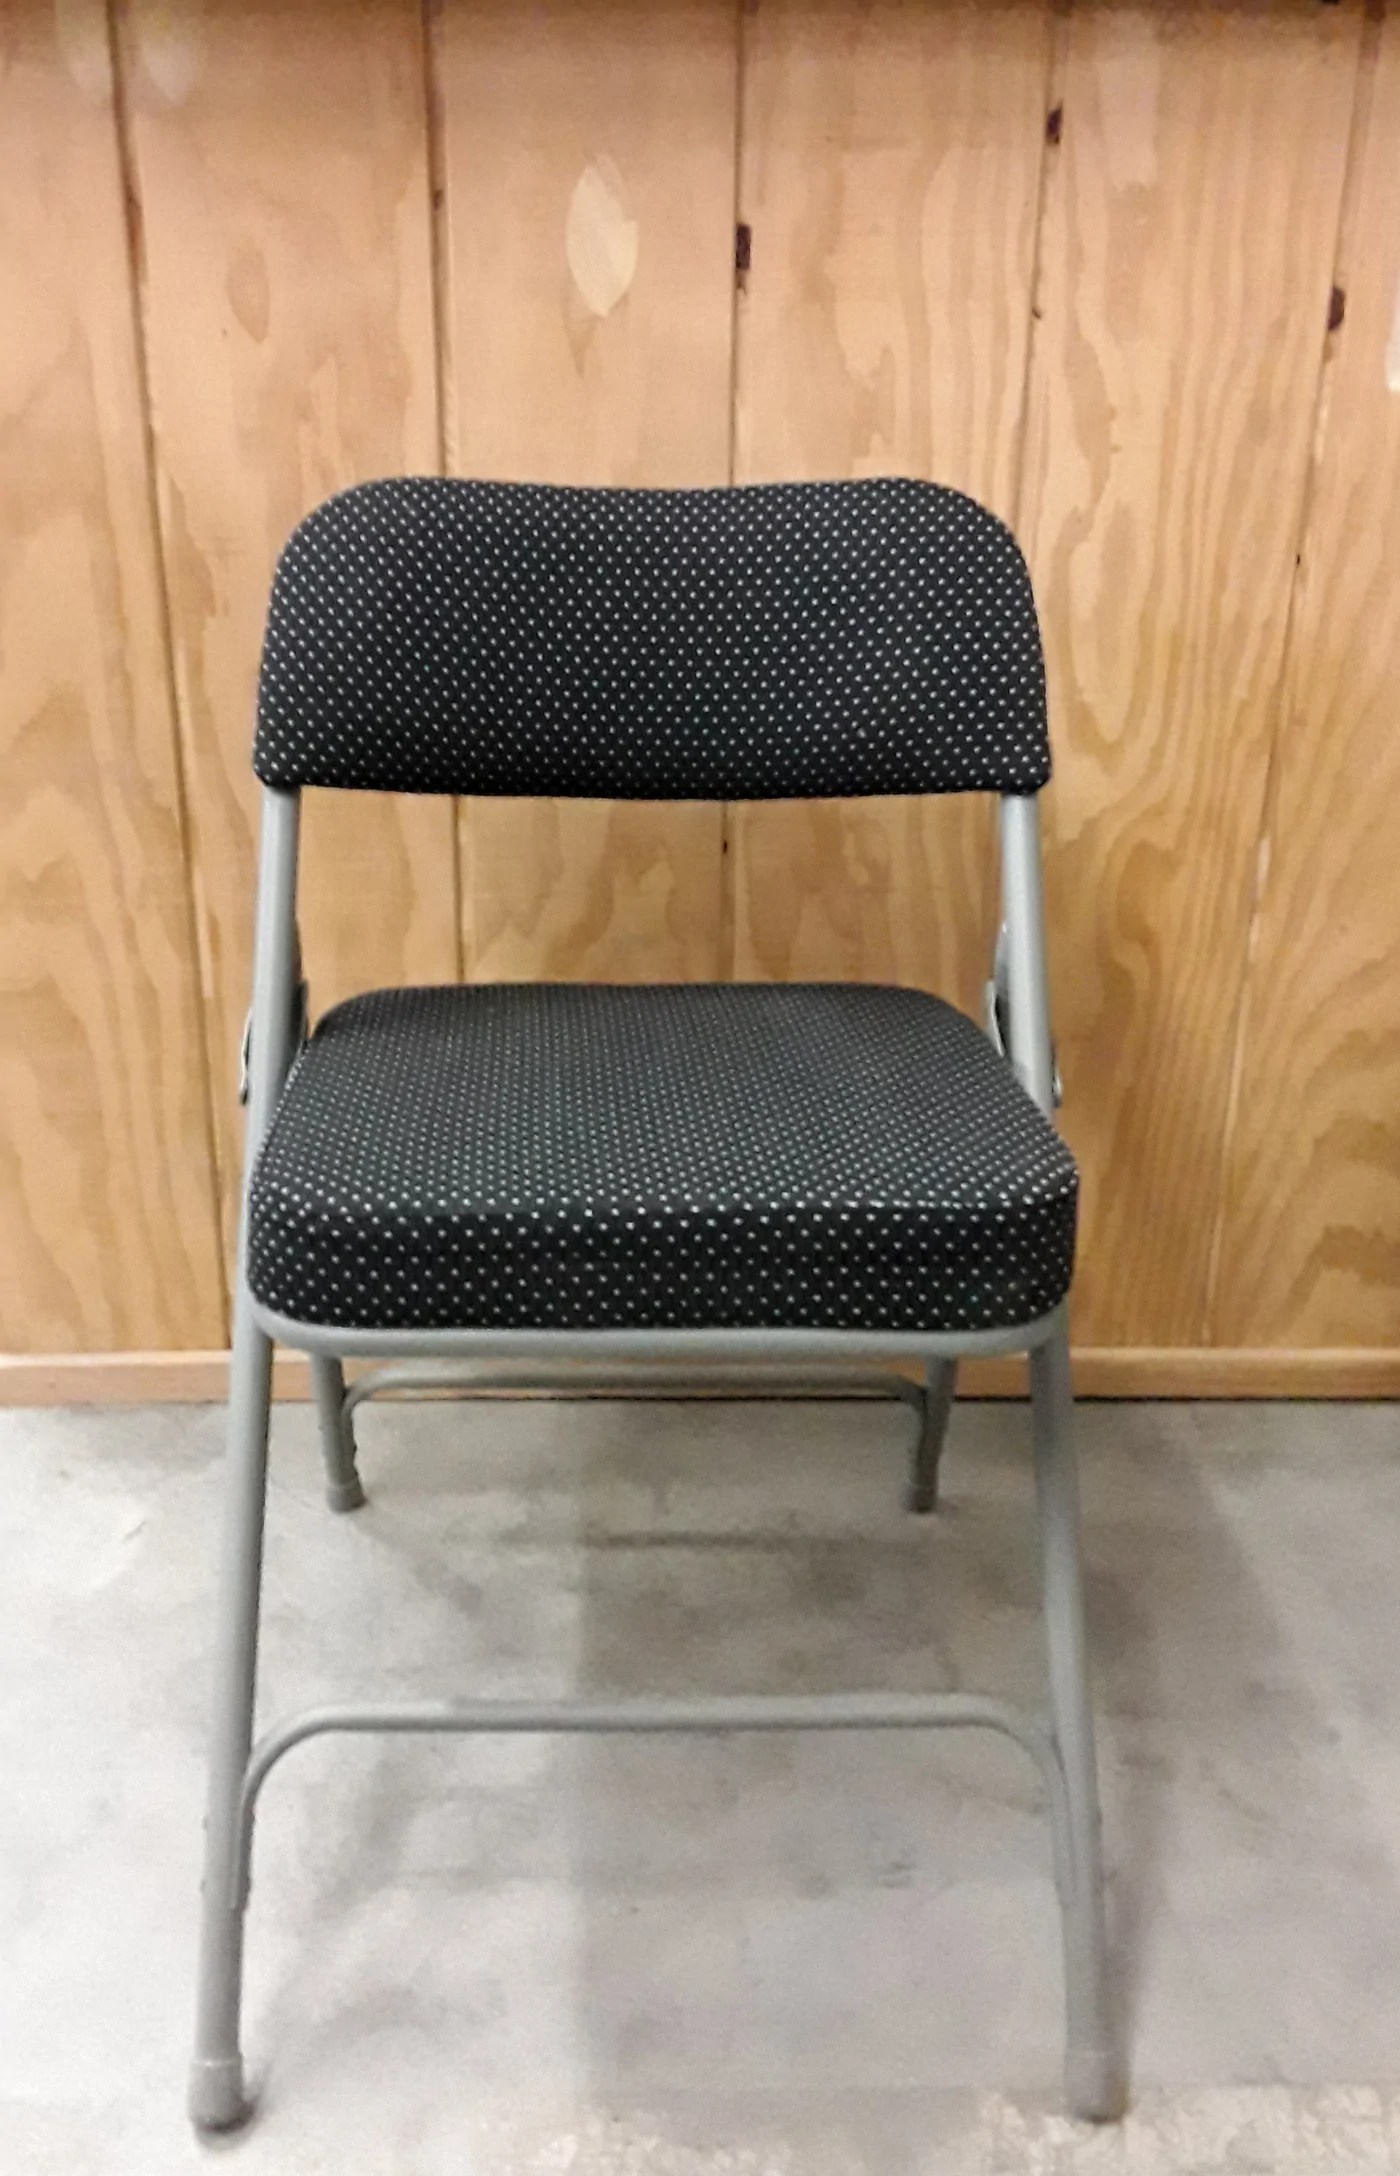 Western Chairs Banquet Chairs Clearance Sale